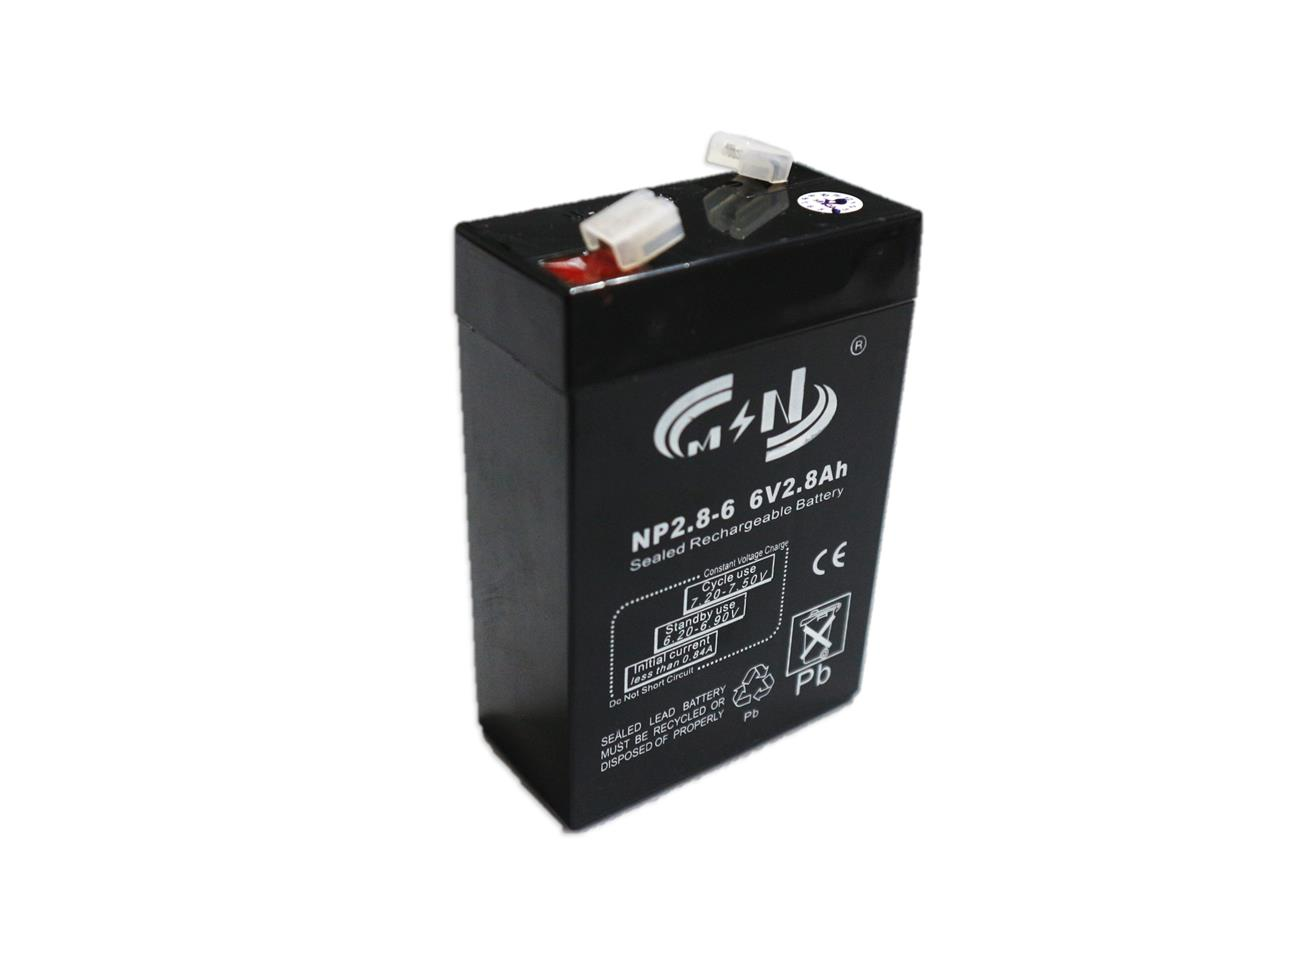 6V 2.8Ah Sealed Rechareable Battery